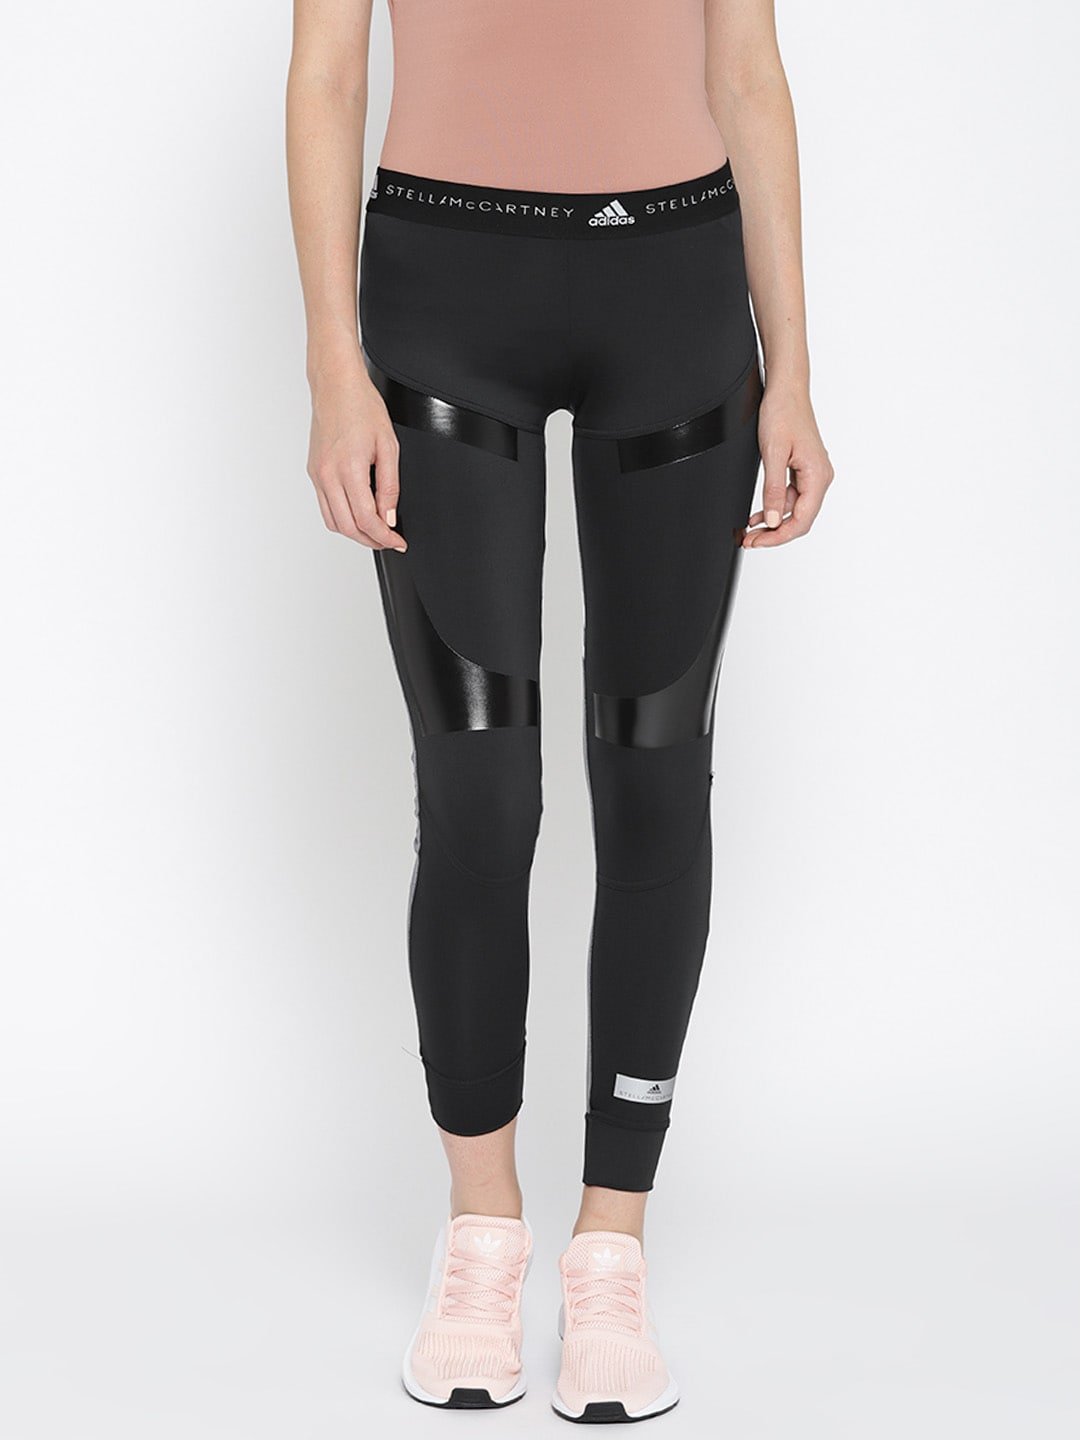 outlet store 247ac 1c053 Adidas Tights - Buy Adidas Tights online in India